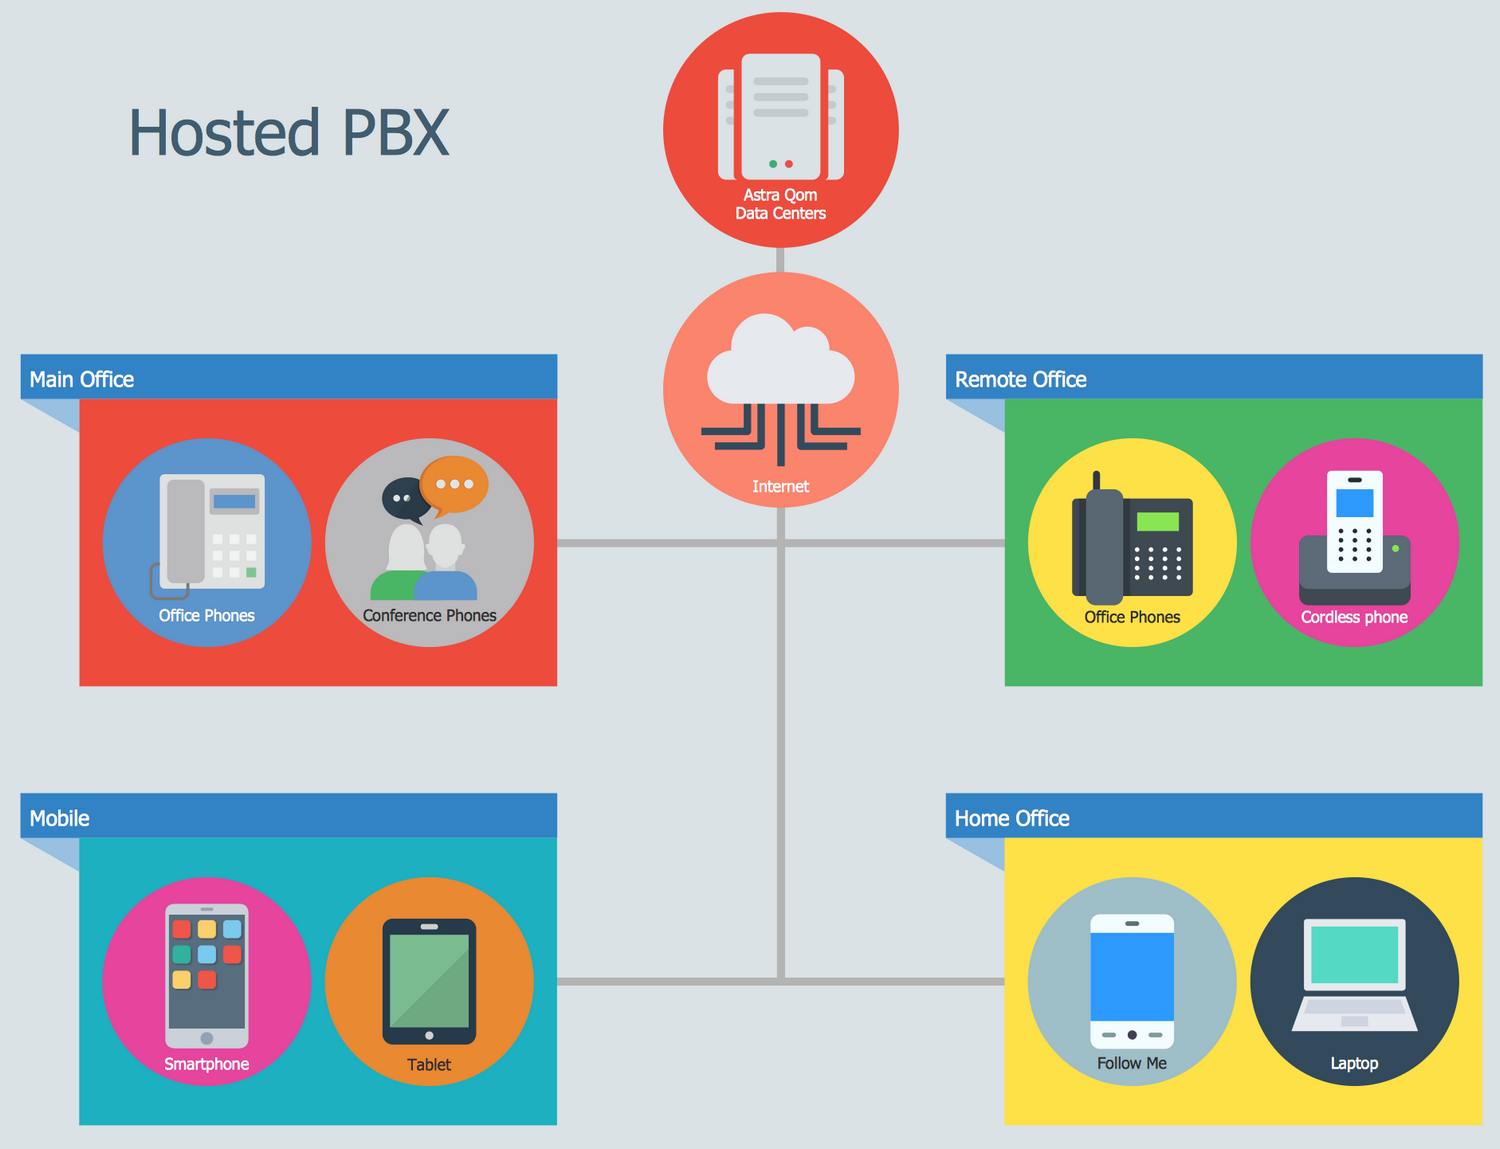 IIllustration Audio,Video,Media Example - How Does the Hosted PBX Work